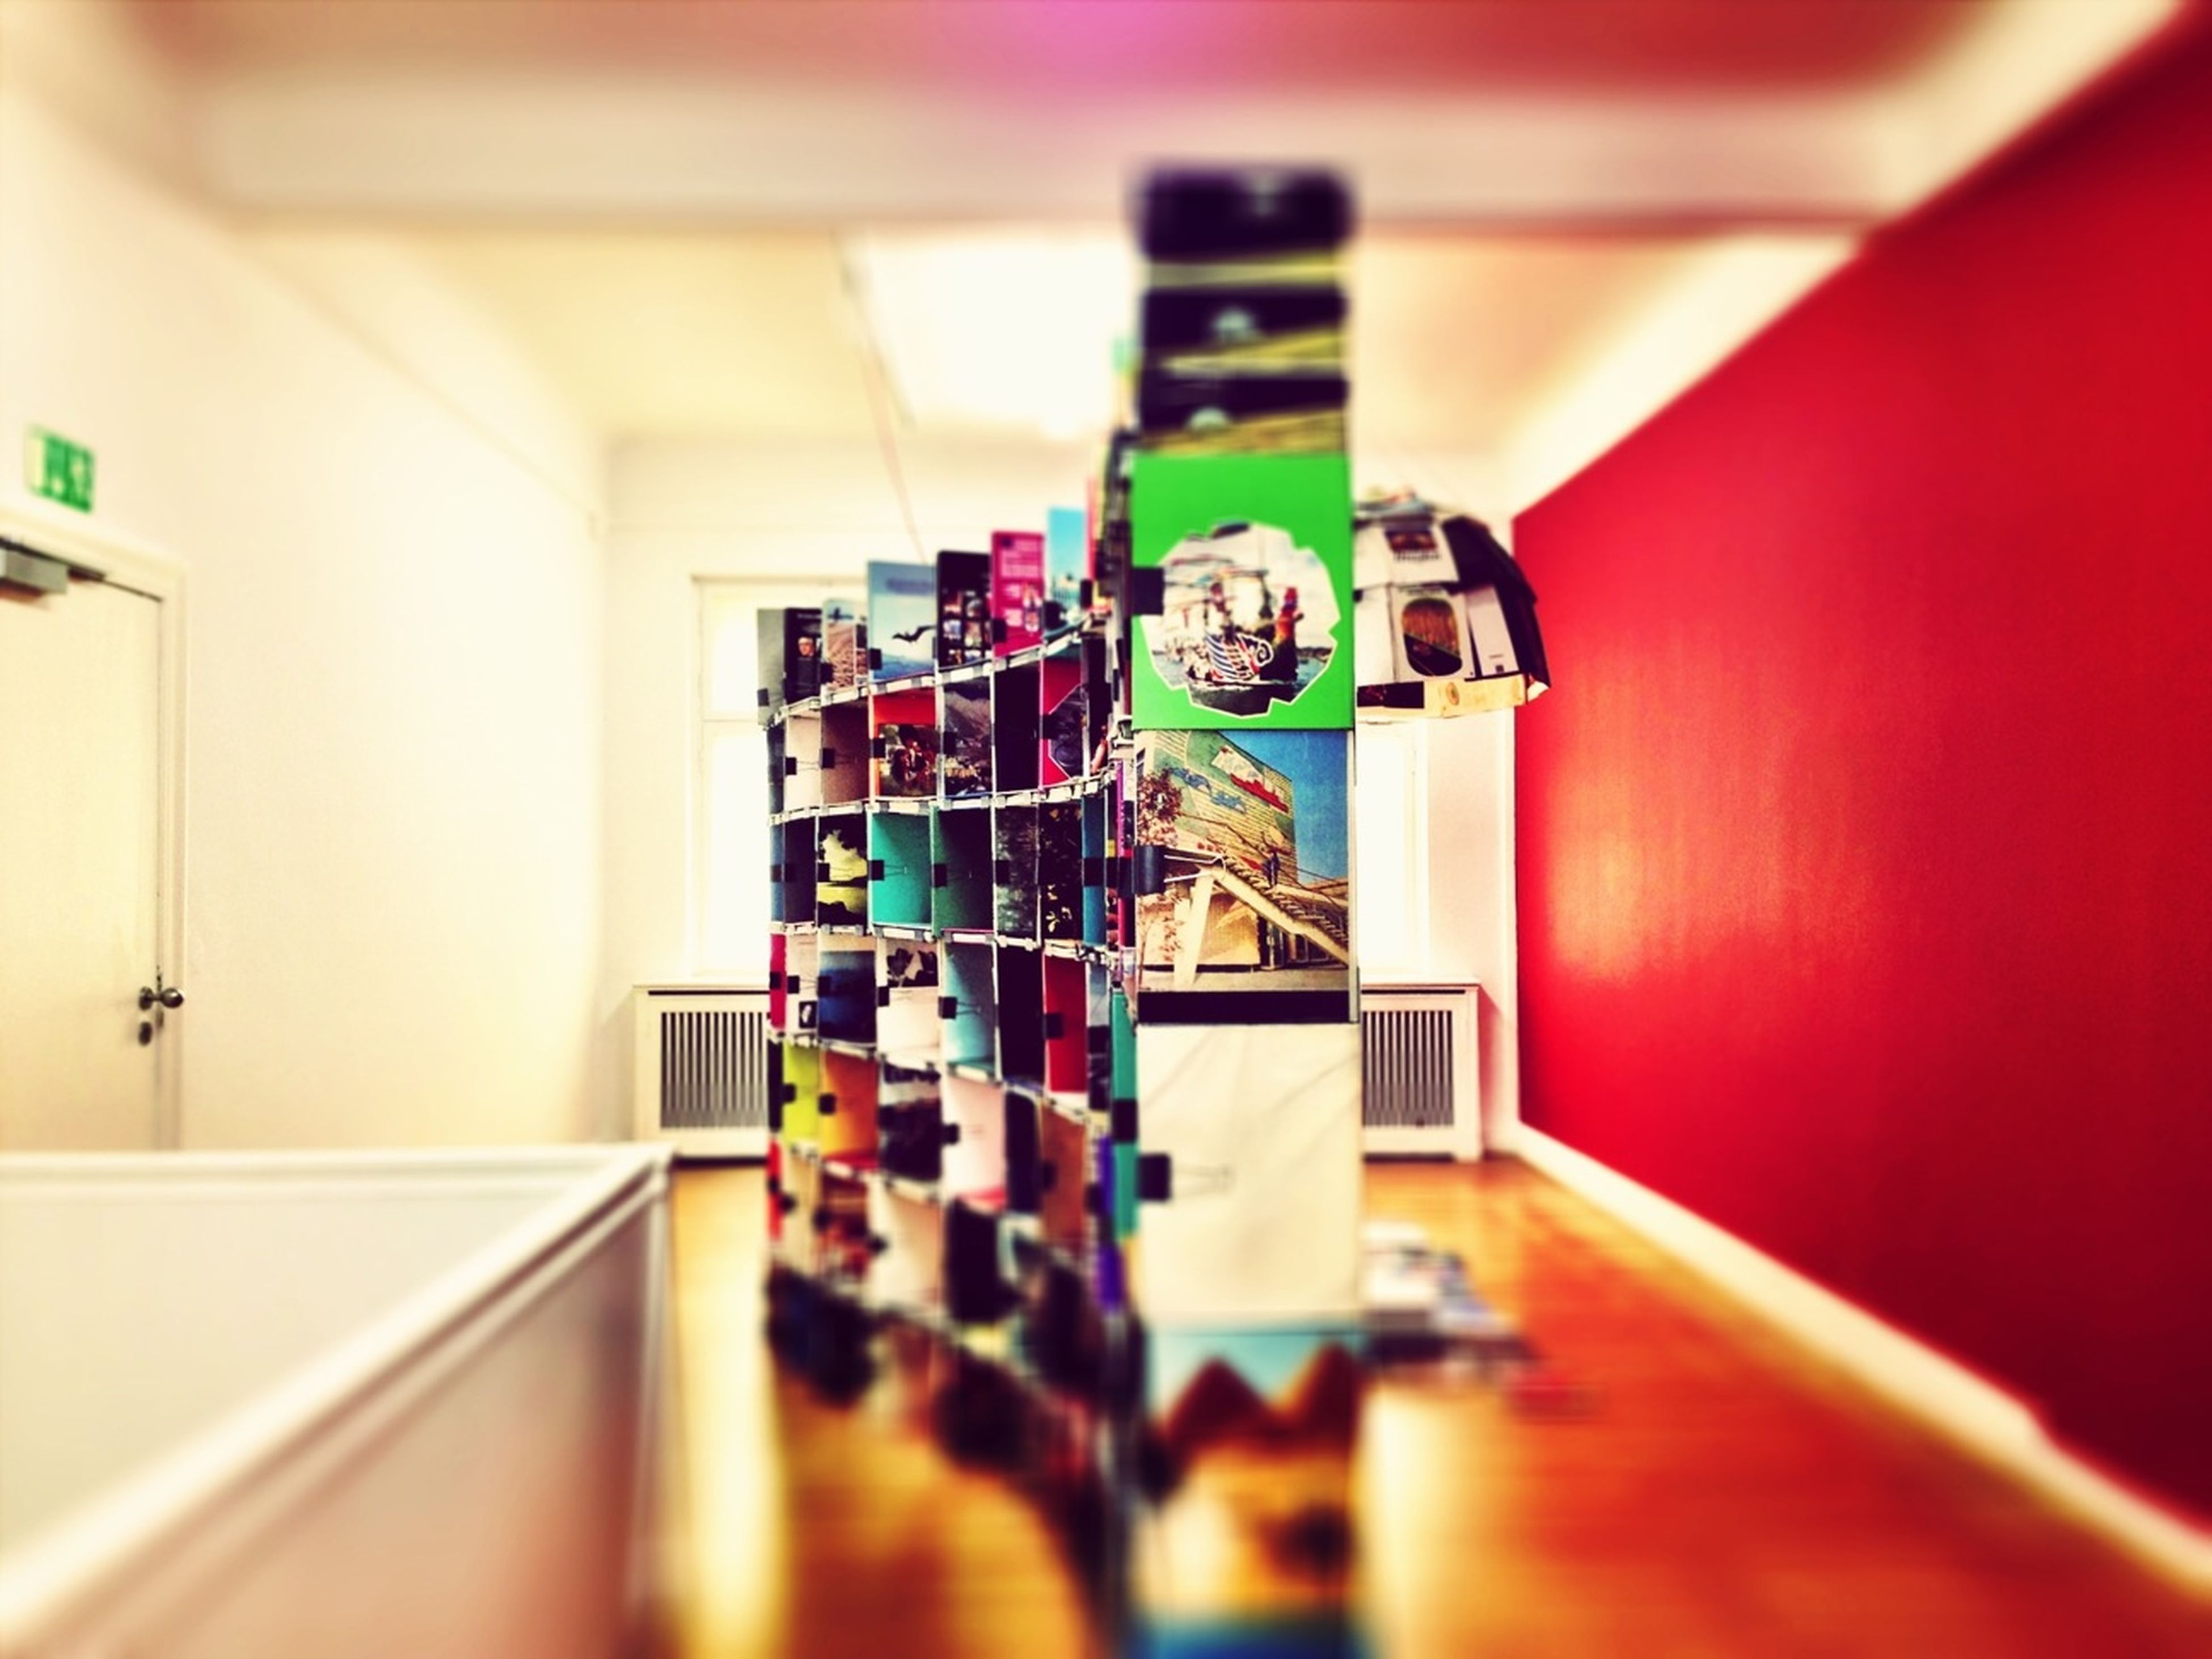 indoors, wall - building feature, technology, selective focus, home interior, no people, illuminated, wall, door, ceiling, flooring, hanging, connection, absence, communication, built structure, convenience, lighting equipment, arts culture and entertainment, architecture